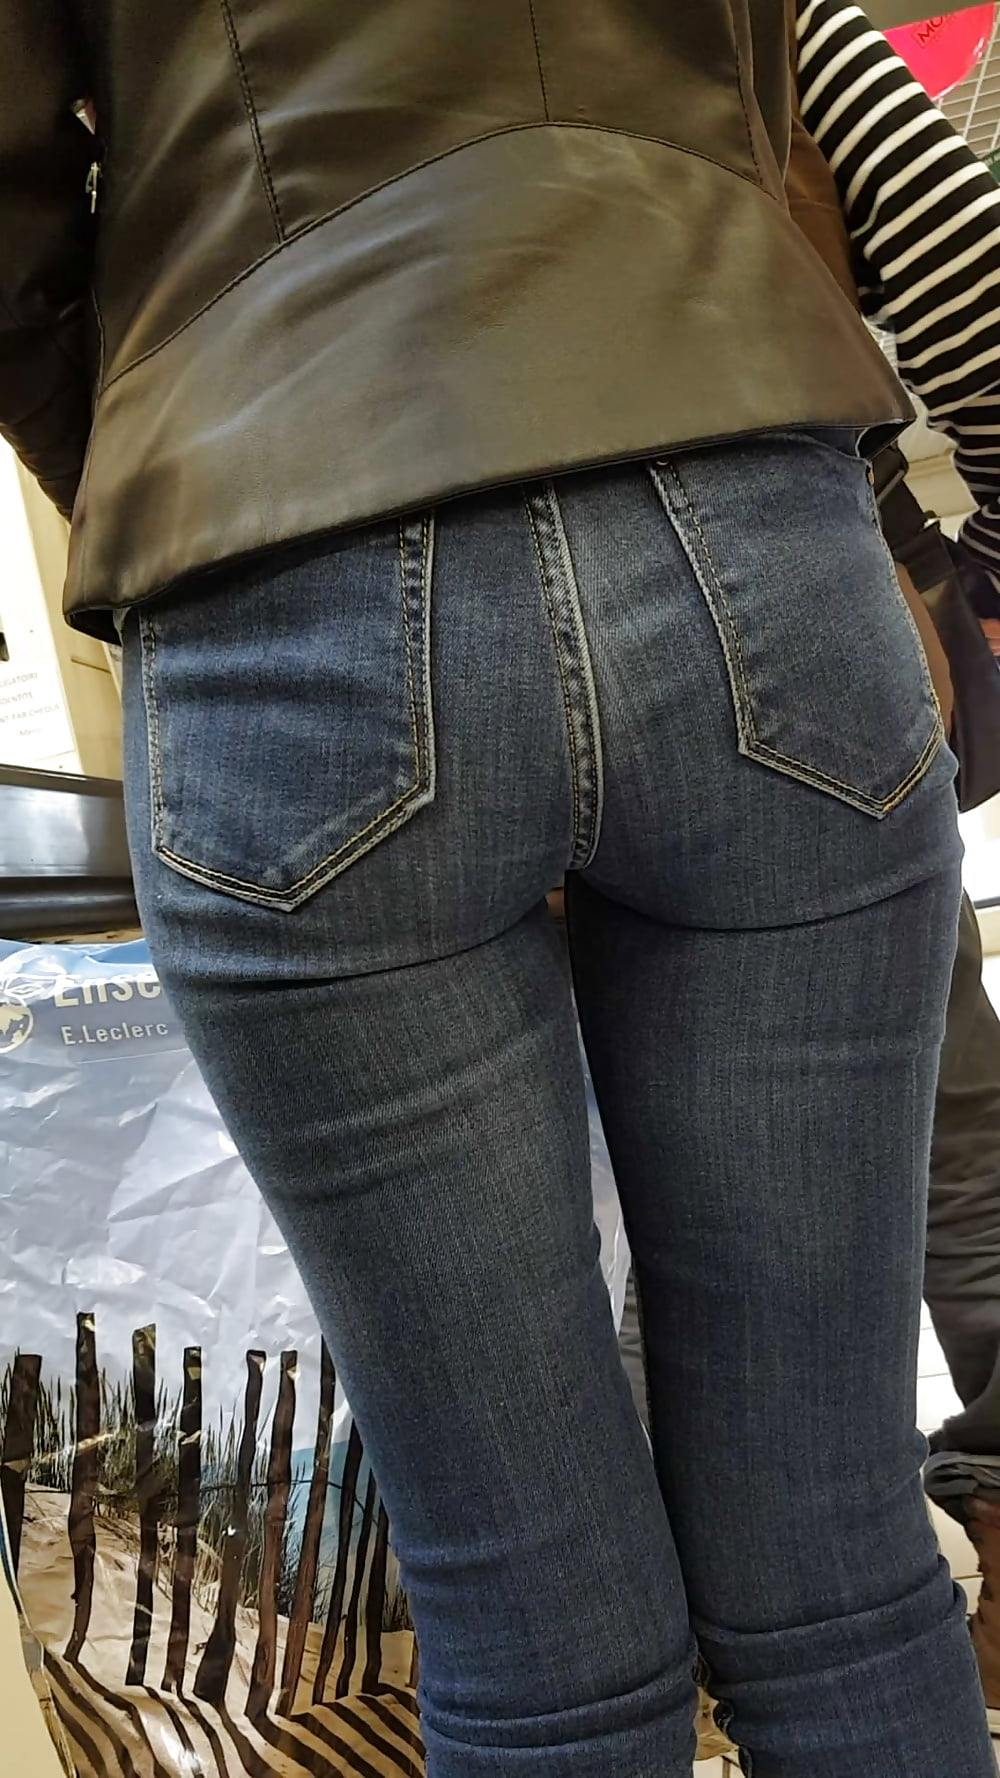 cherokee-jeans-so-tight